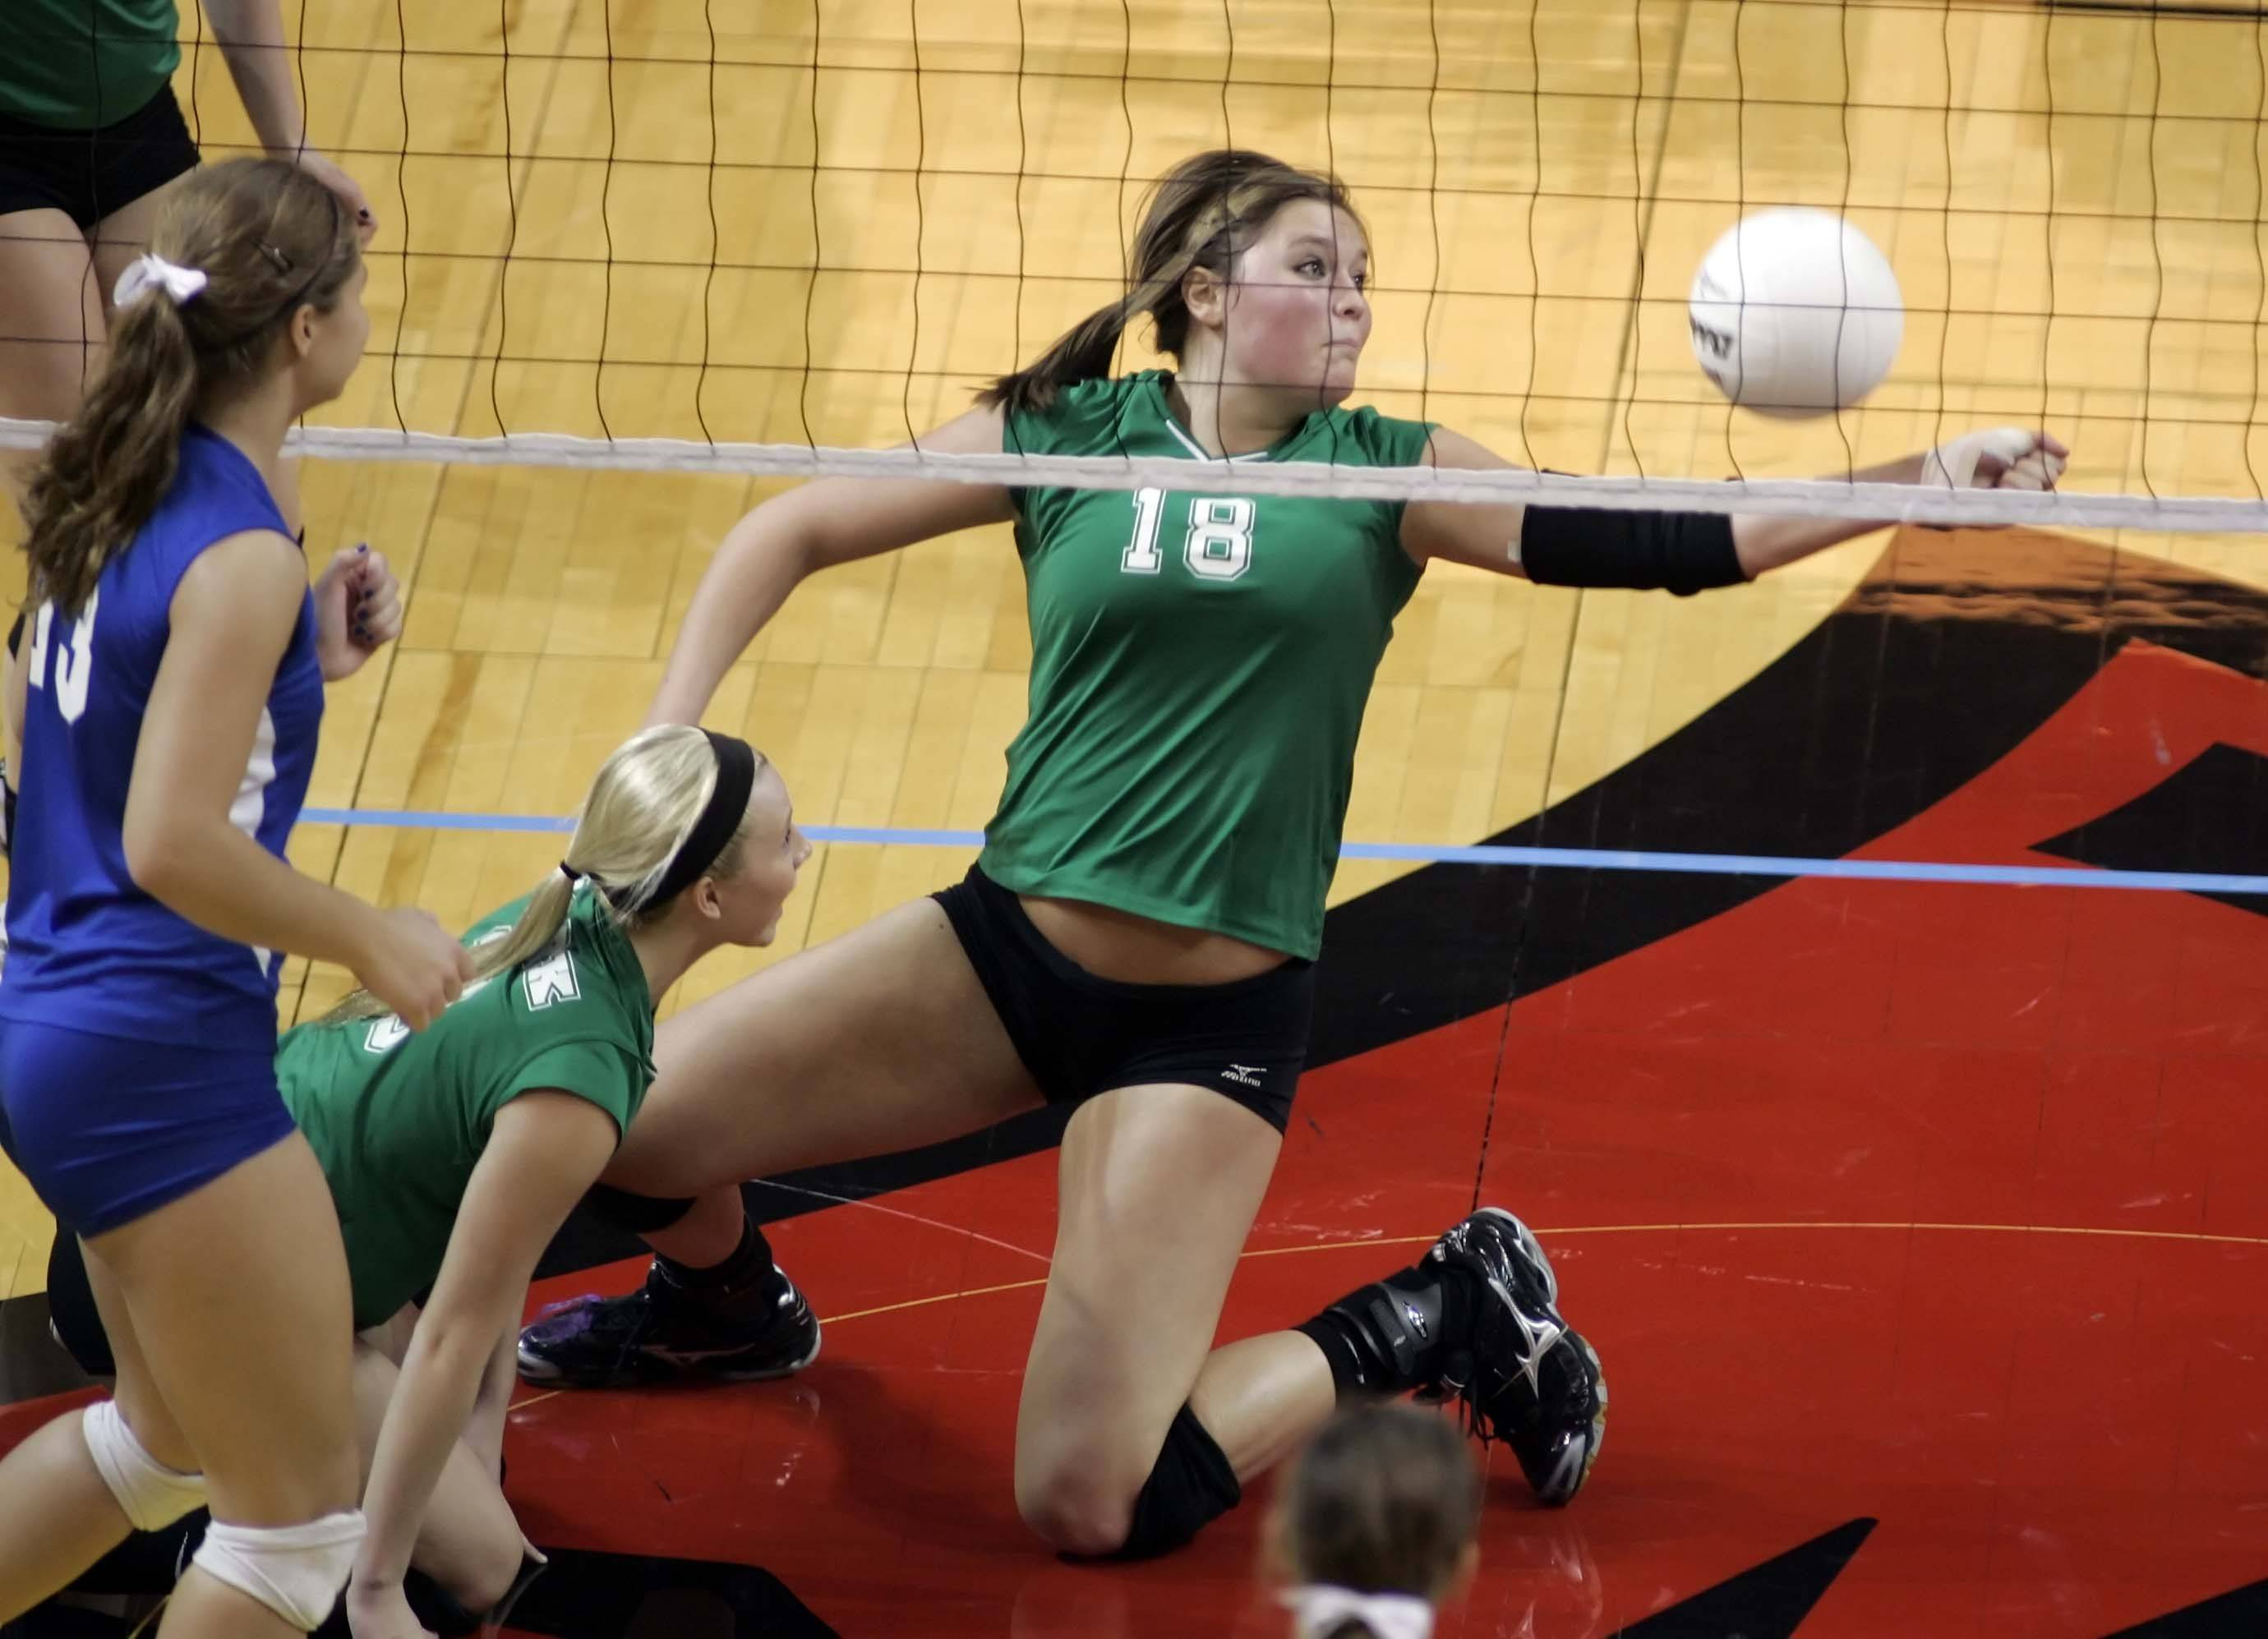 York middle blocker Sam Schrenker, 18, tries to pick up a dig during their match against Lyons in the IHSA Class 4A State semi-final match Friday.